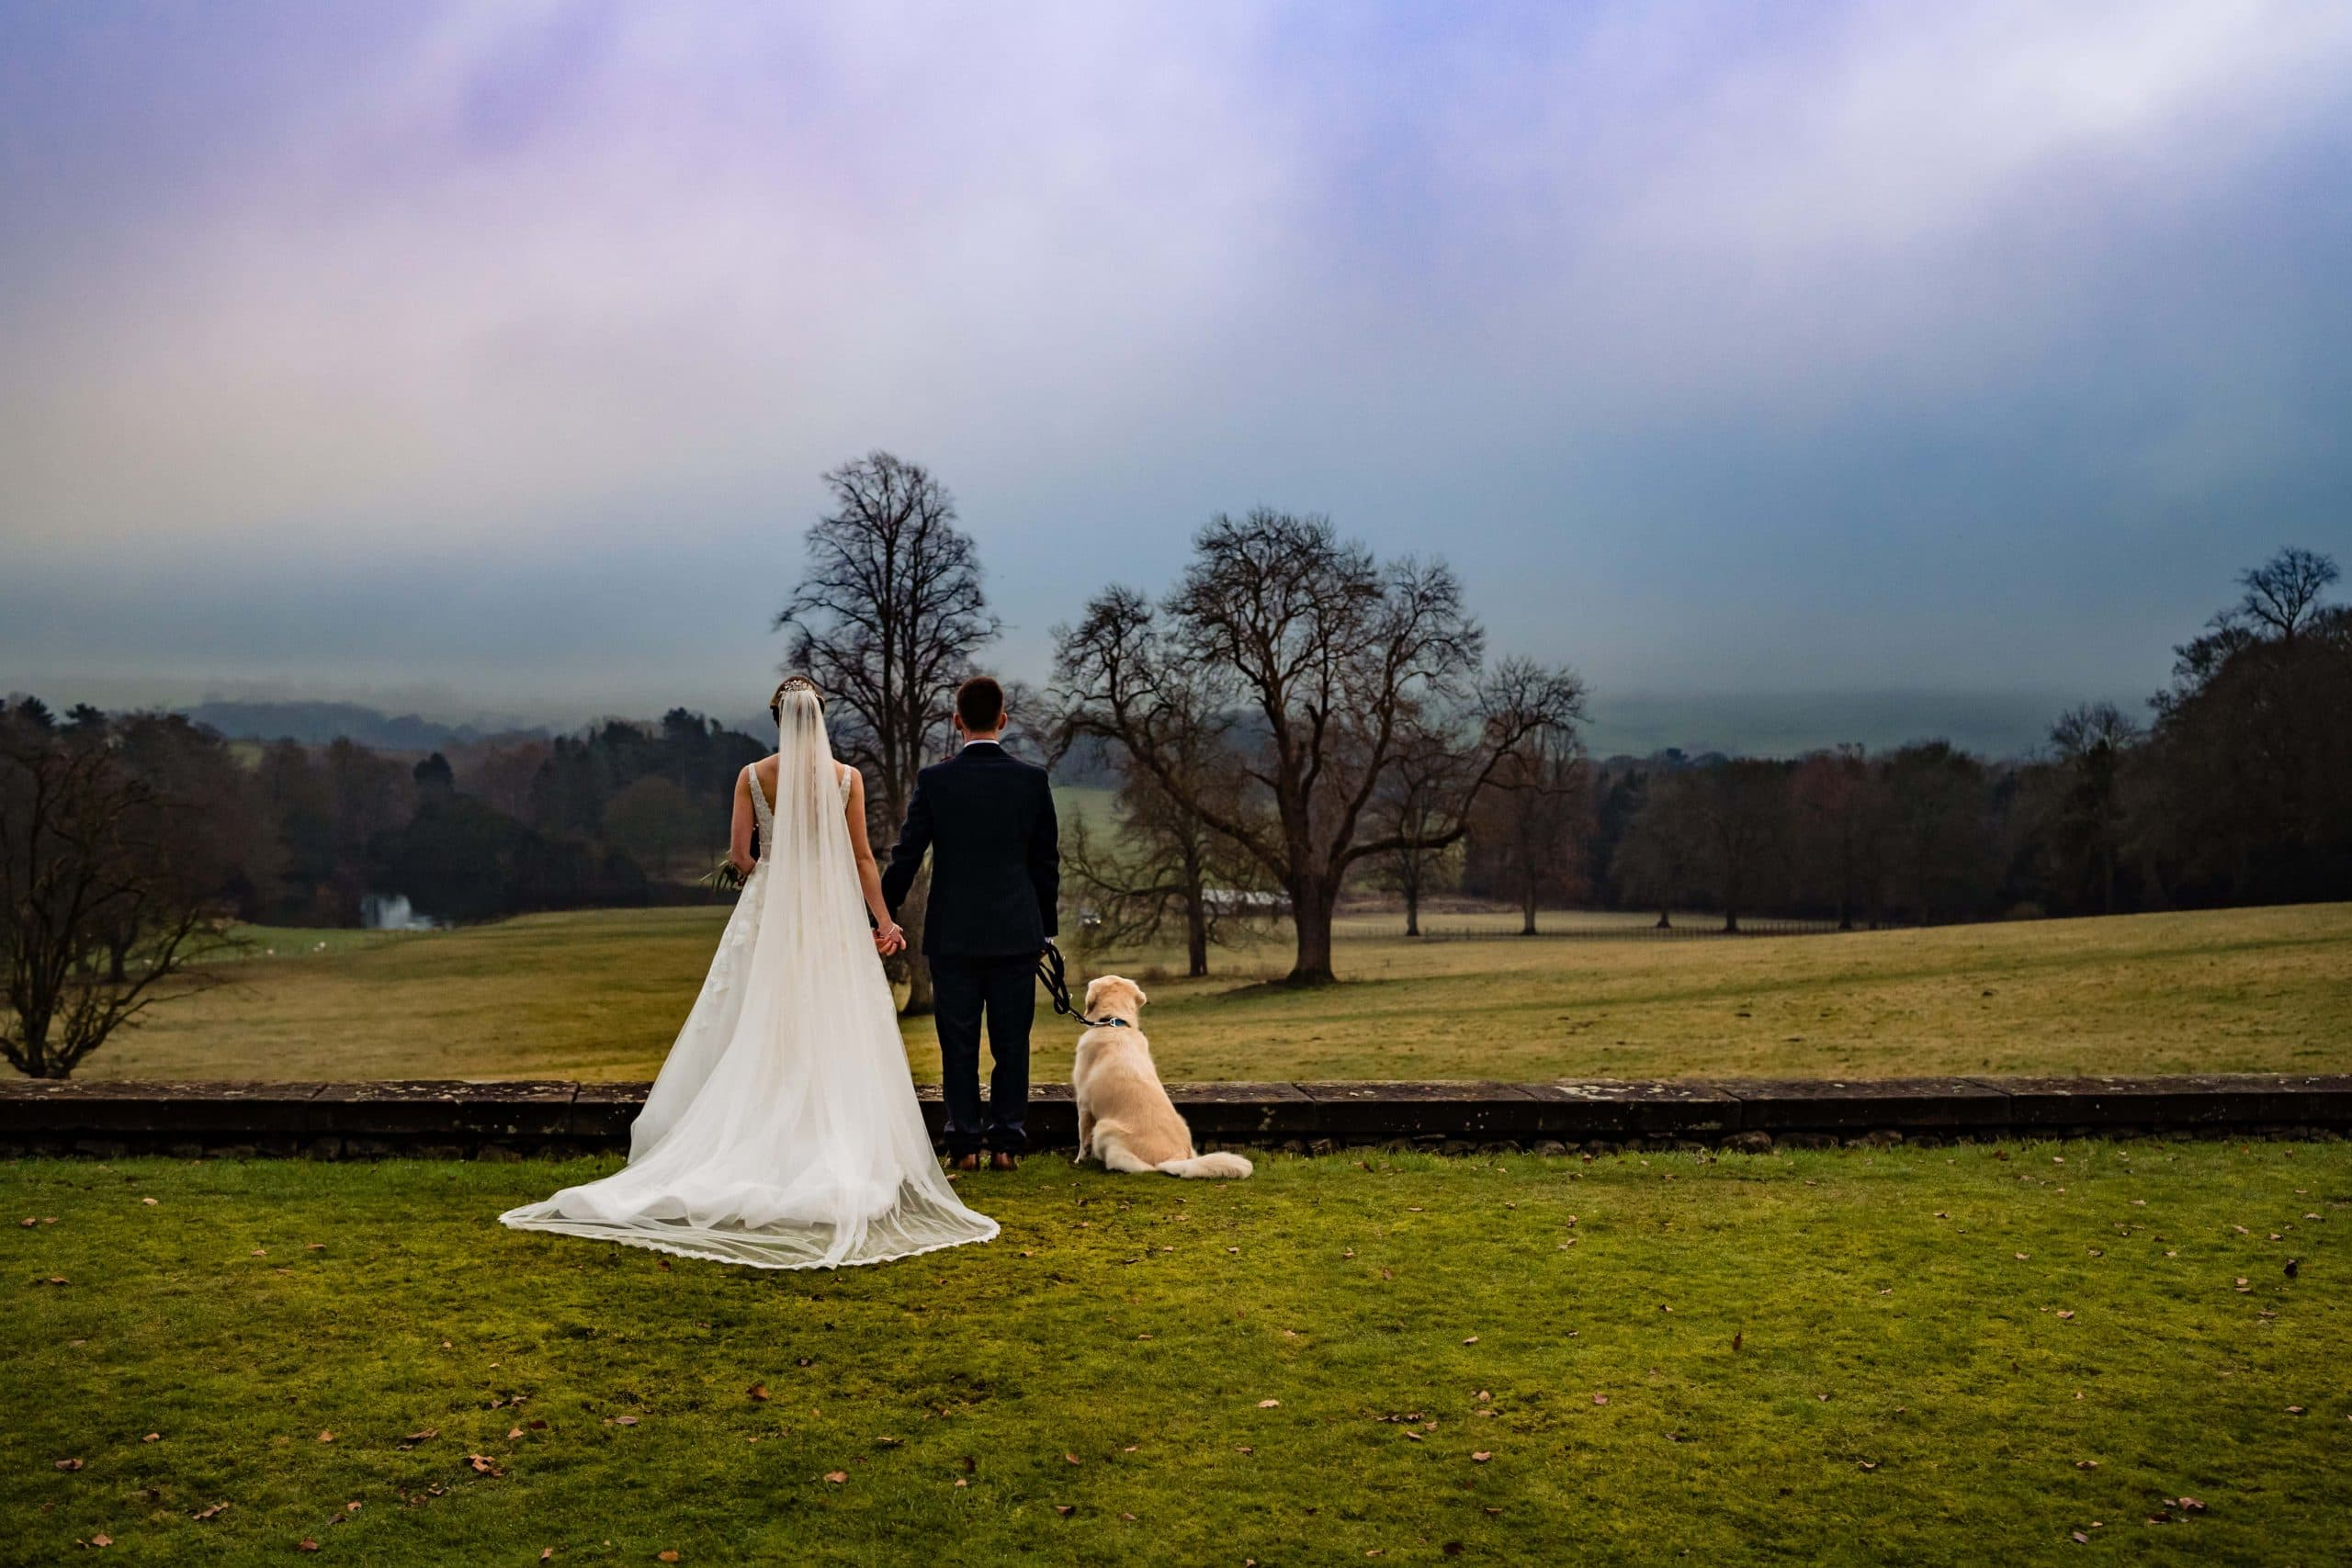 chesterfield weddingphotographer, derbyshire wedding photographer, candid wedding photography, wedding photographer near me